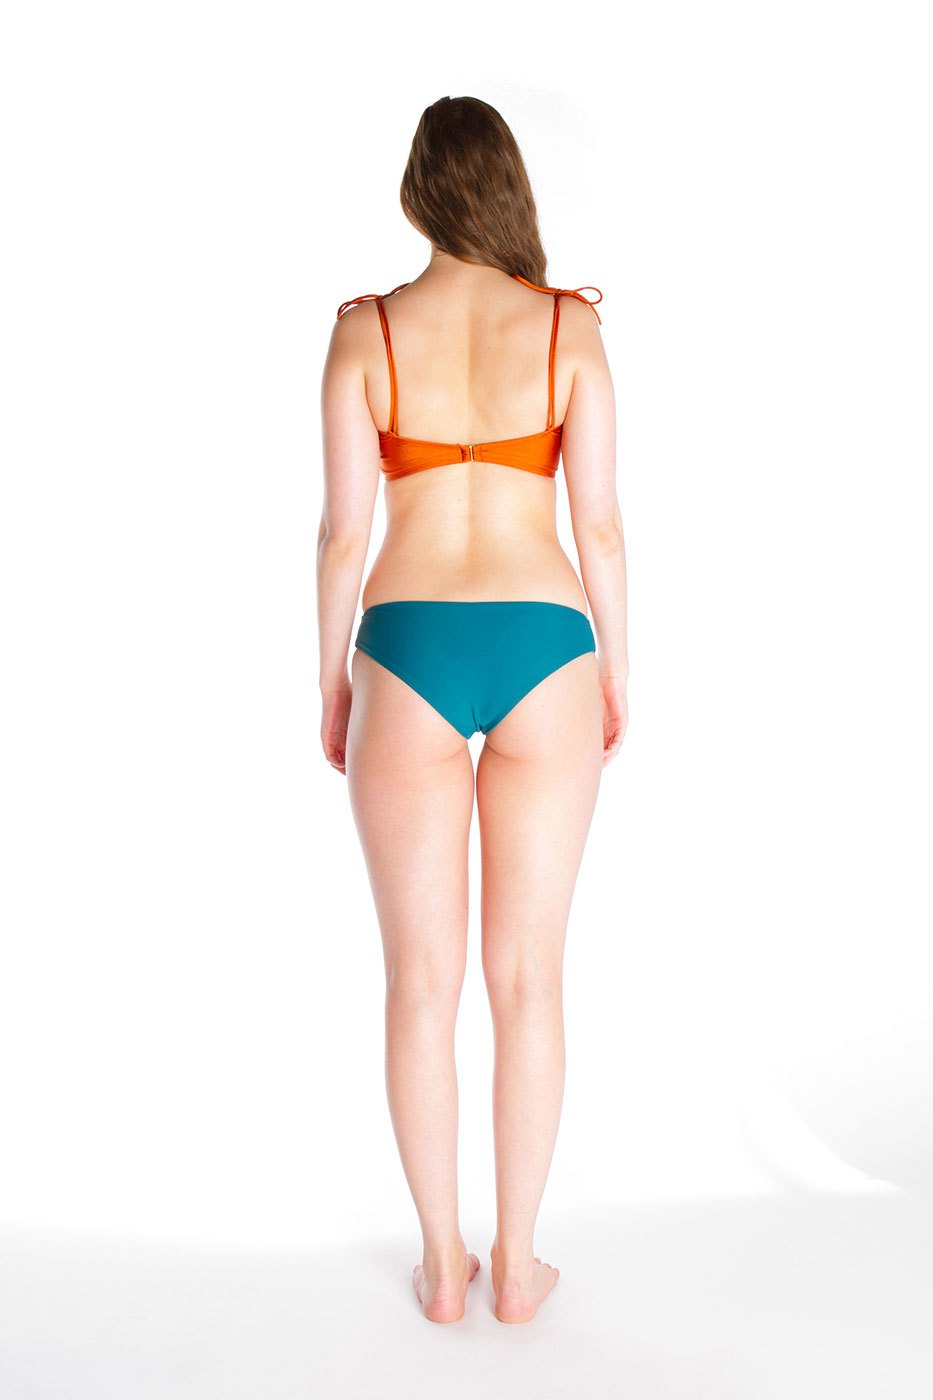 MARINA – Top in Orange bronze